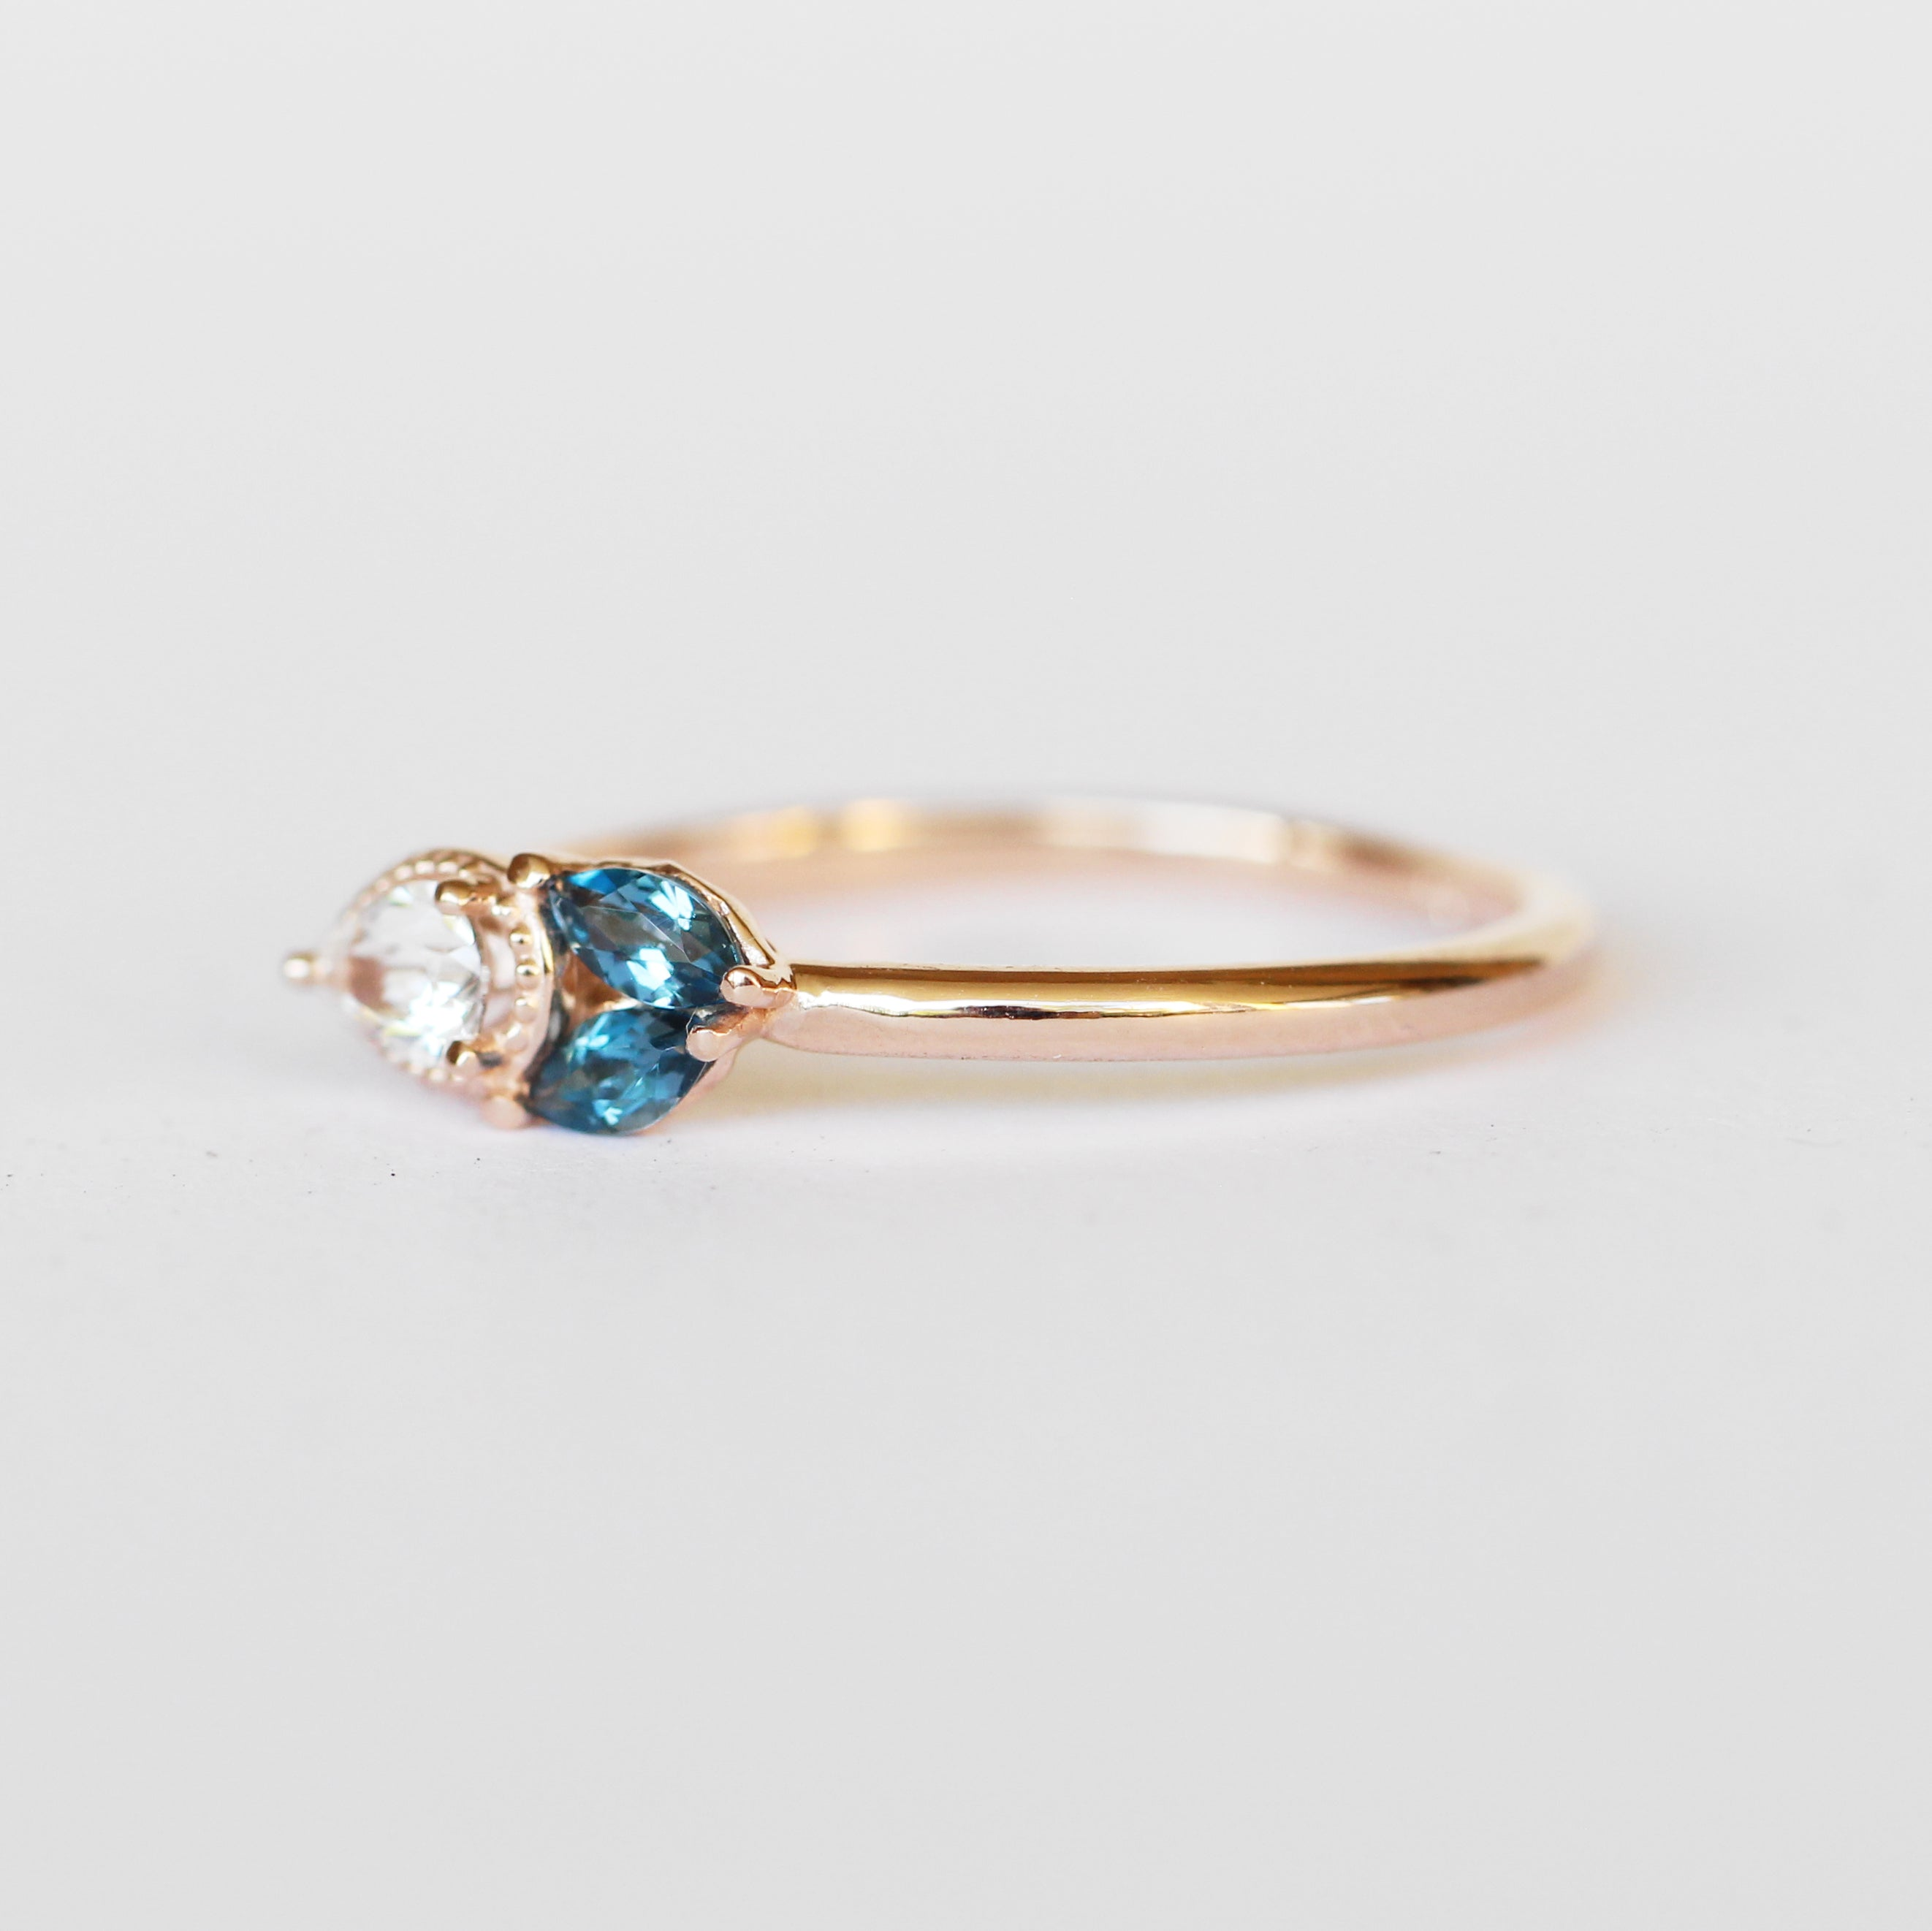 Ariana Ring with London Blue Topaz Marquise + Sapphire Pear in 10k Rose Gold - Ready to Size and Ship - Celestial Diamonds ® by Midwinter Co.